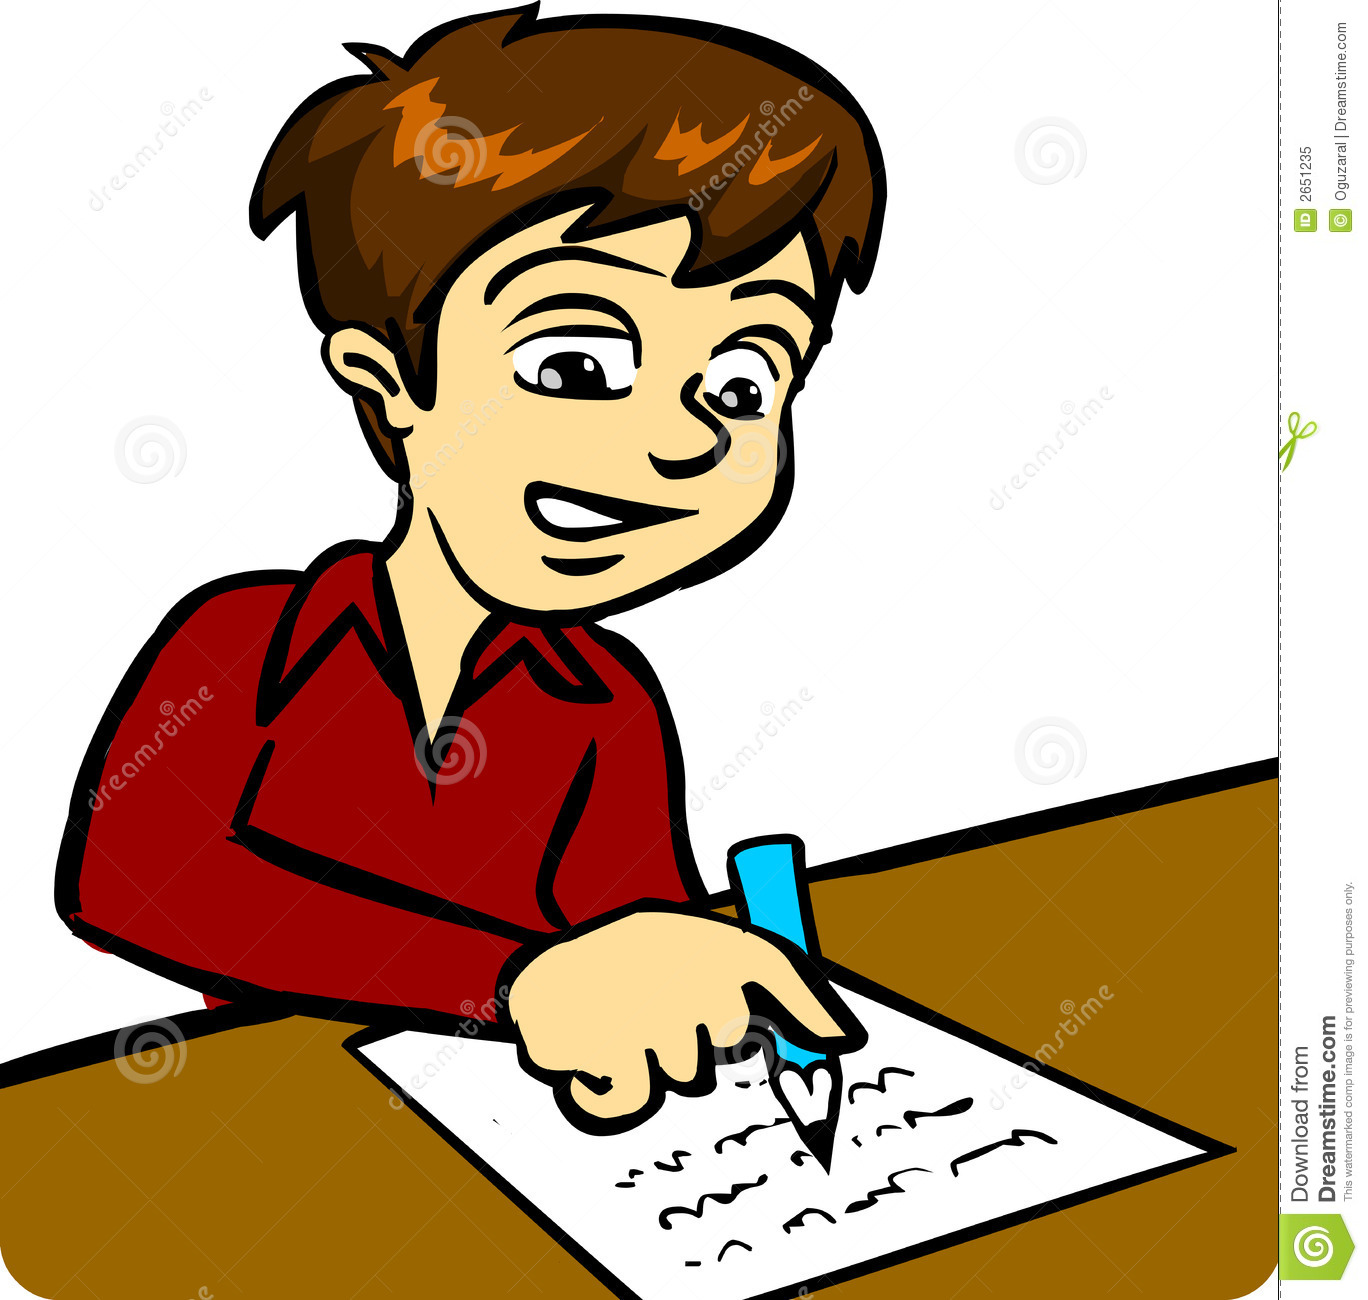 Clipart Picture of Boy Writing on Paper